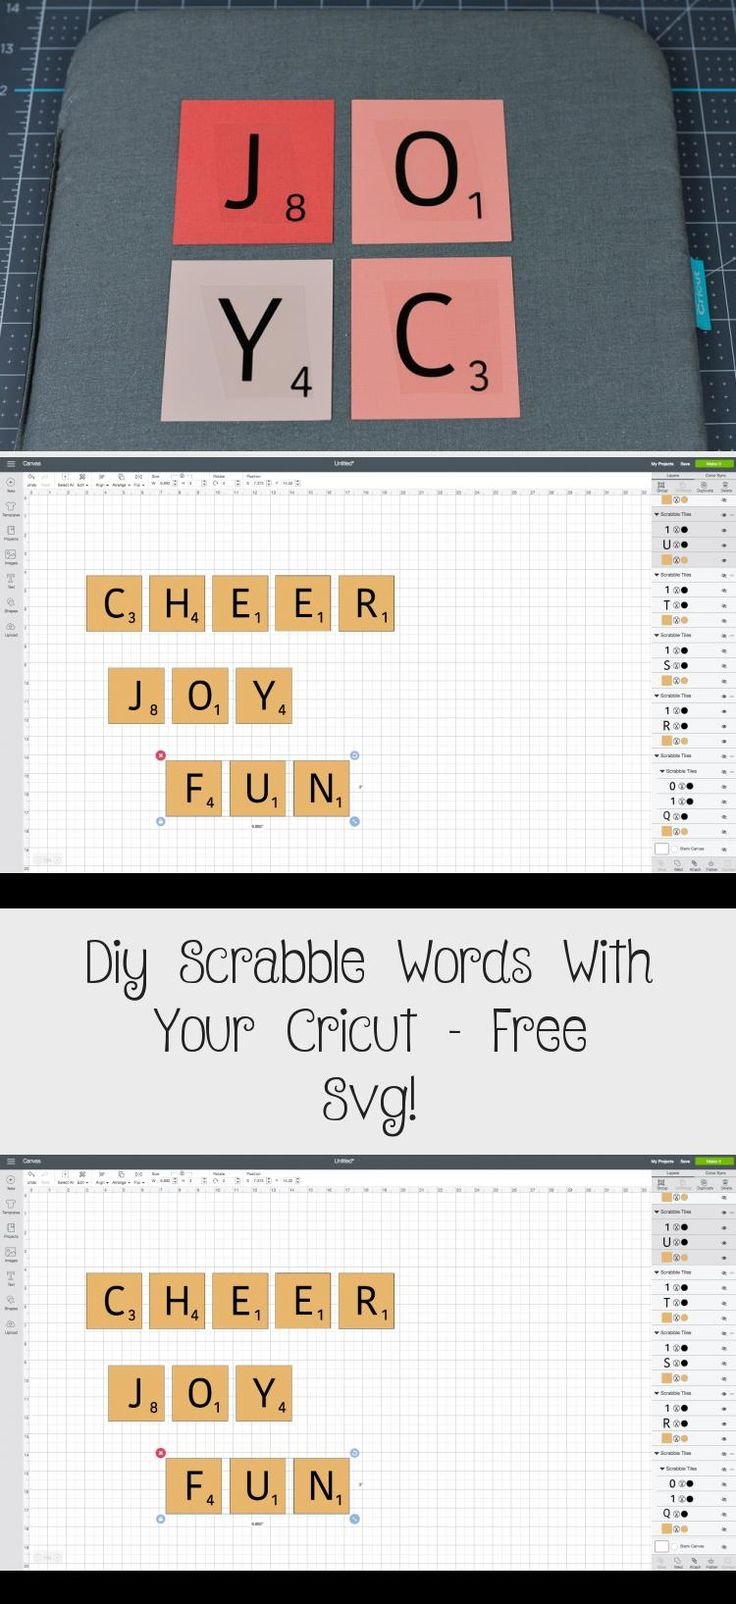 Diy Scrabble Words With Your Cricut Free Svg! İdeas in